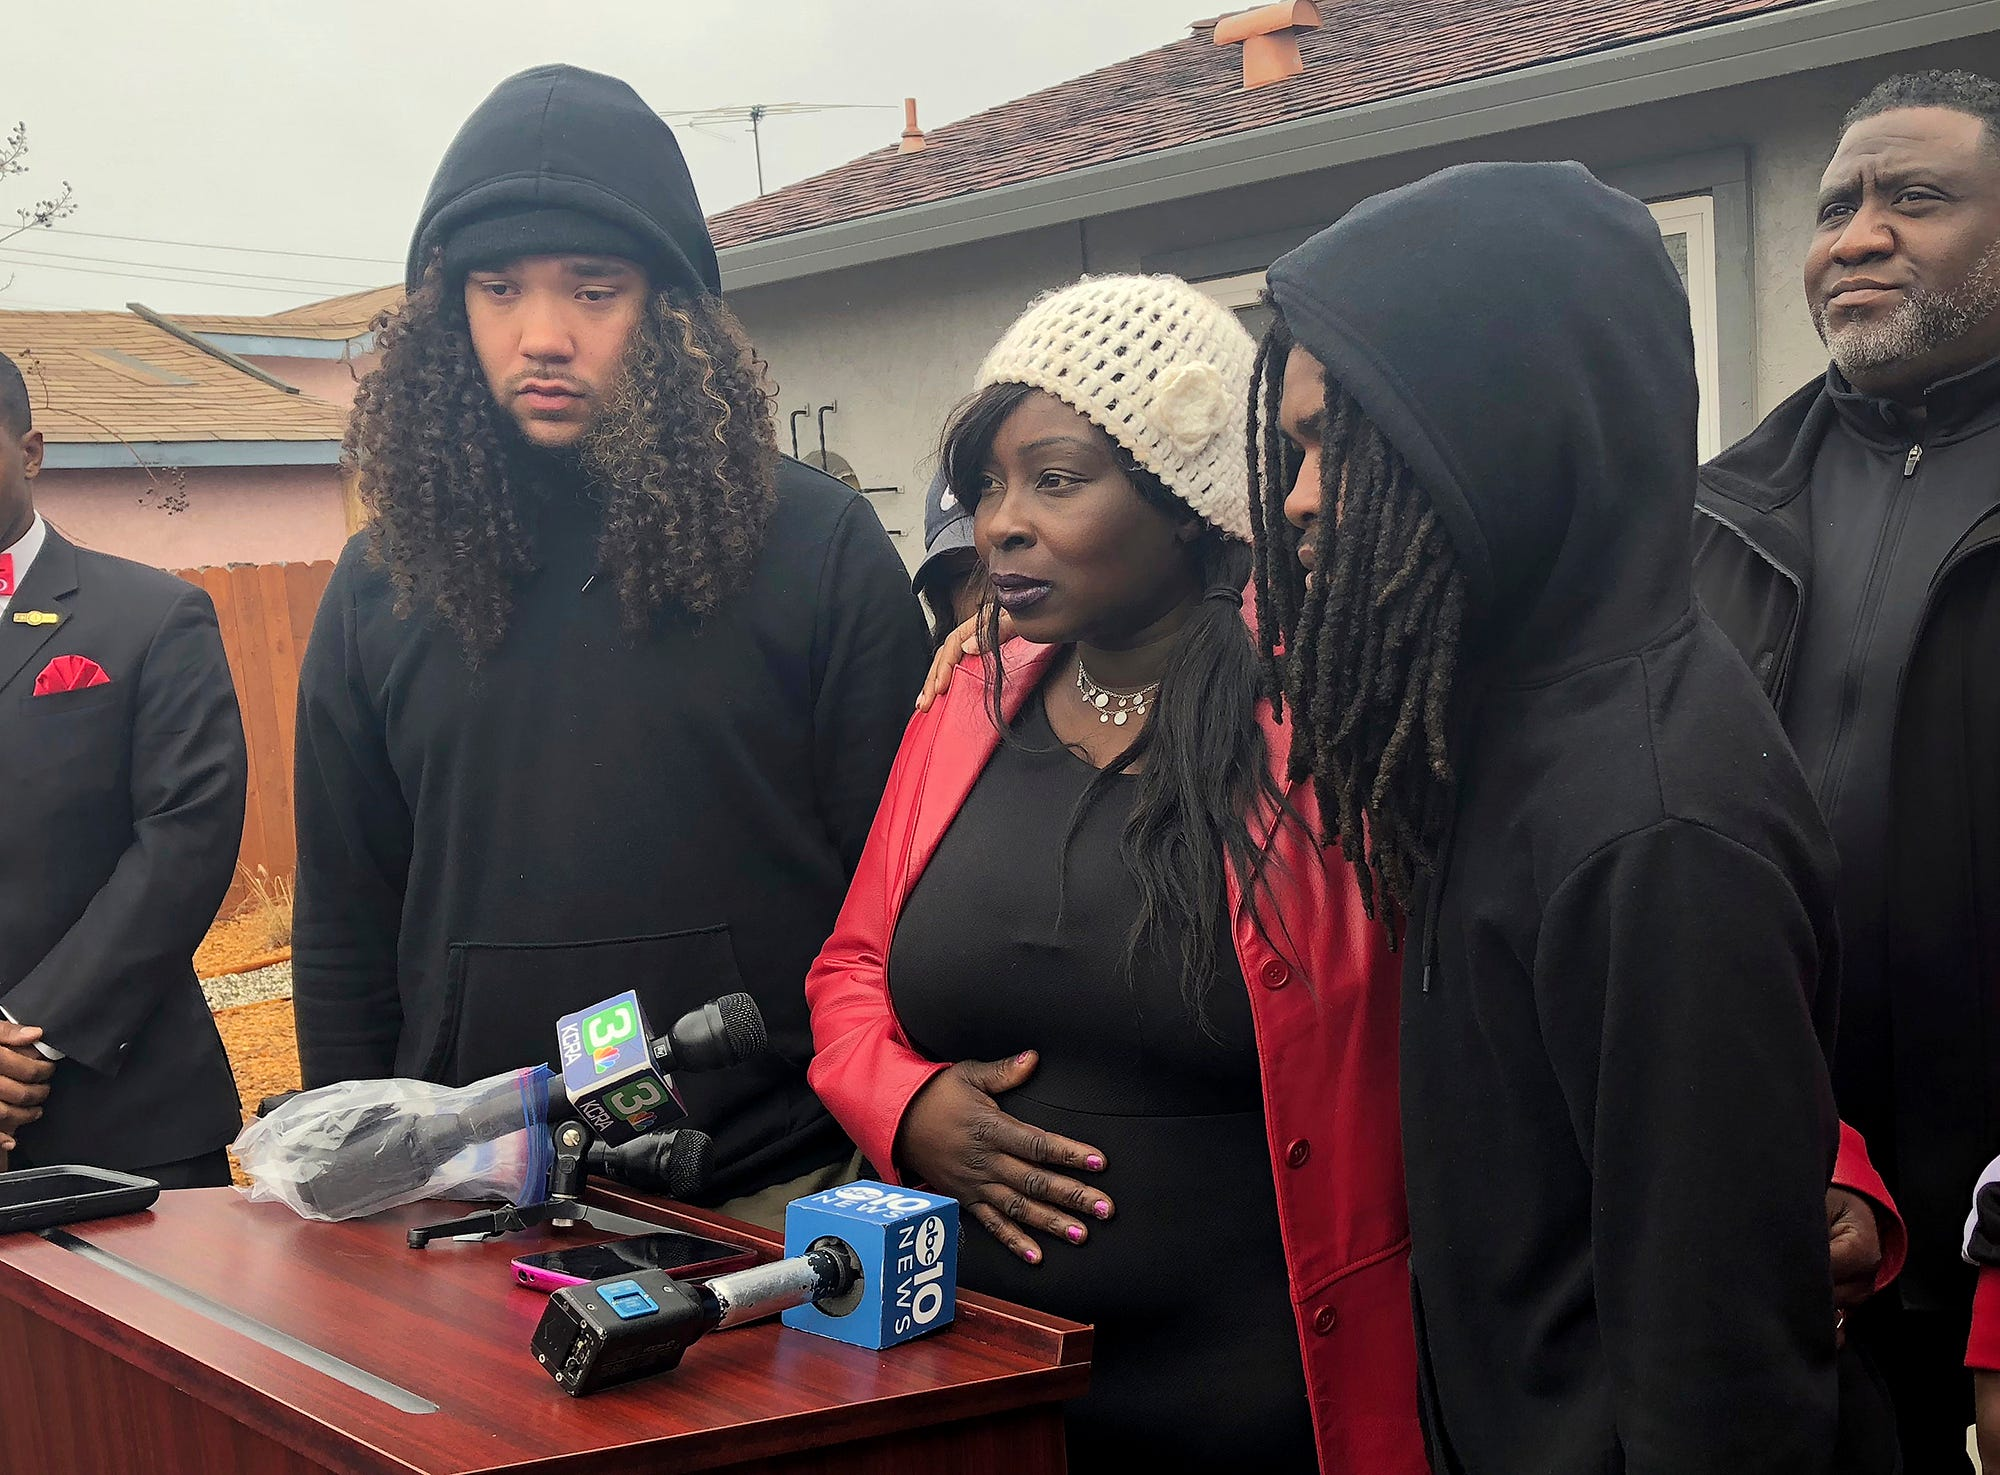 Sequette Clark, center, the mother of police shooting victim Stephon Clark, discusses the decision not to prosecute the two Sacramento Police officers involved, during a news conference in Sacramento, Calif., Saturday, March 2, 2019.